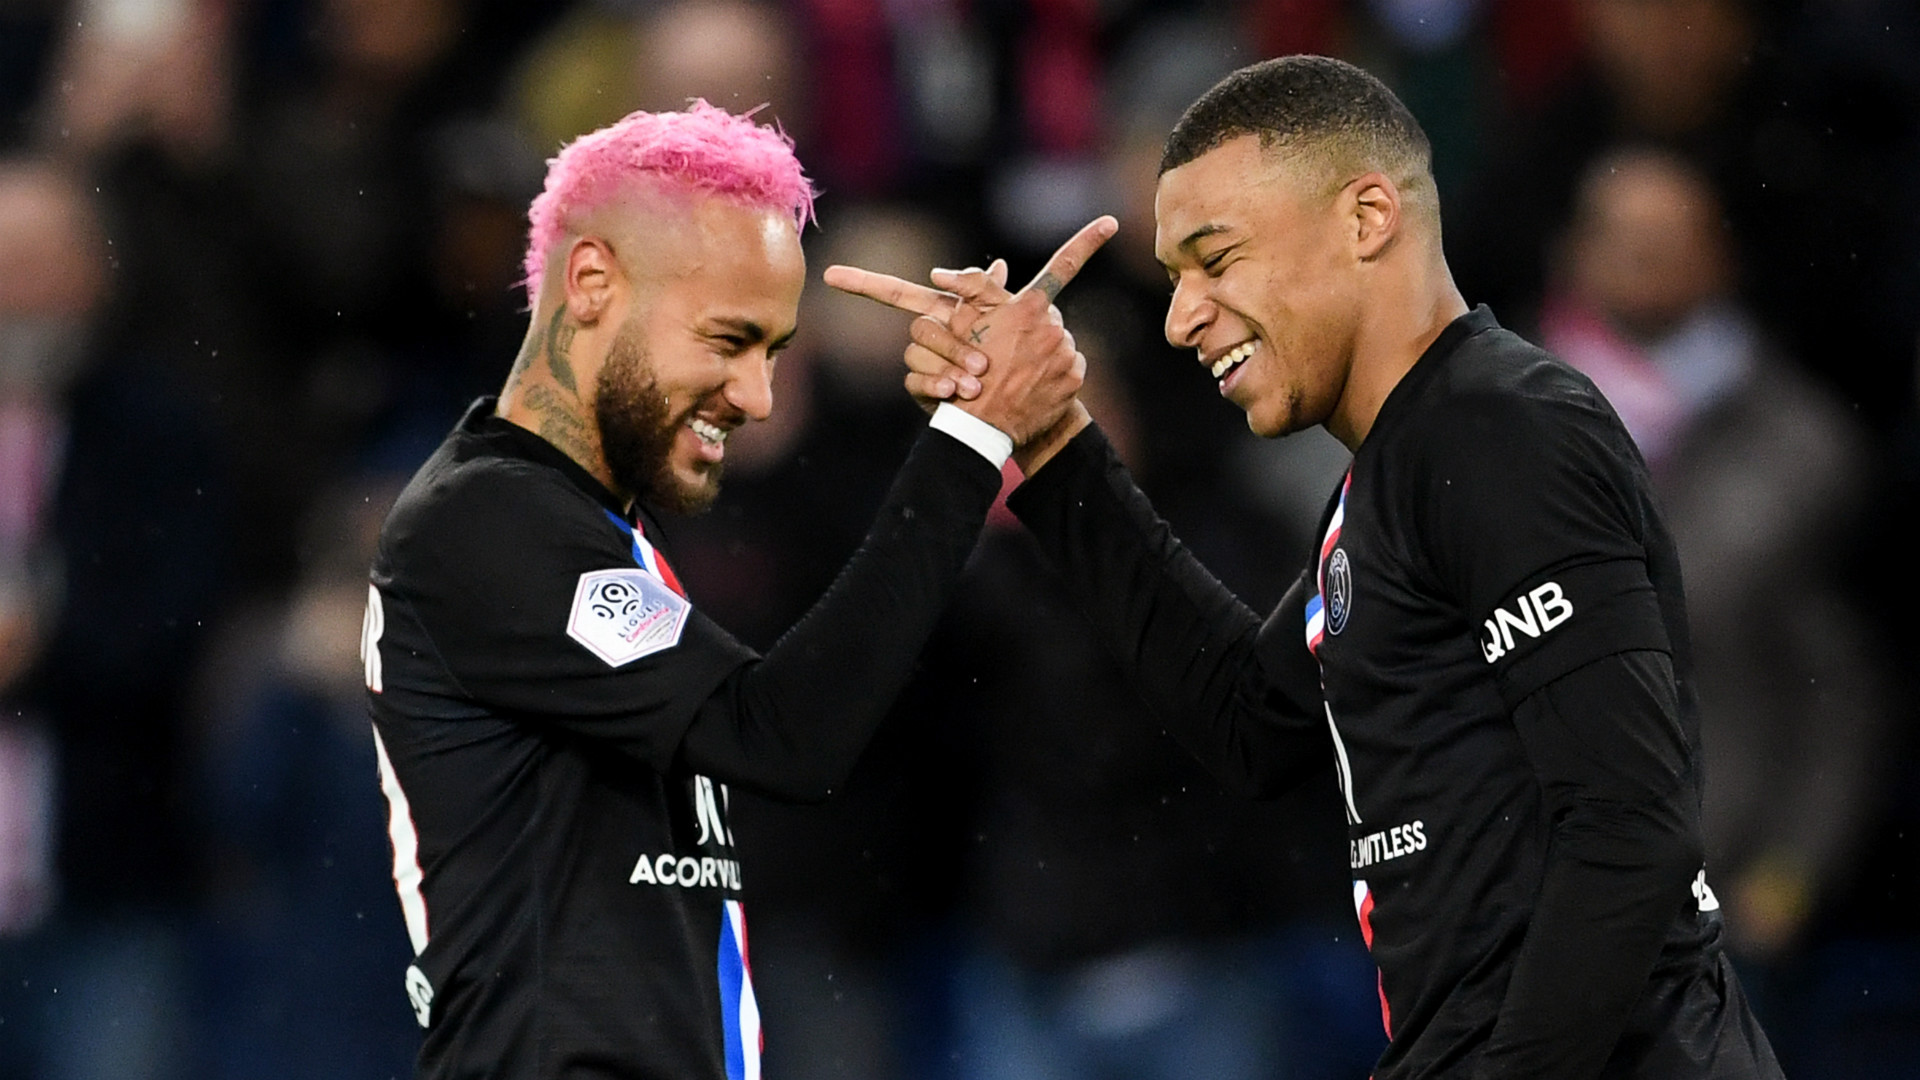 Neymar Confirms Desire To Stay At PSG With Mbappe